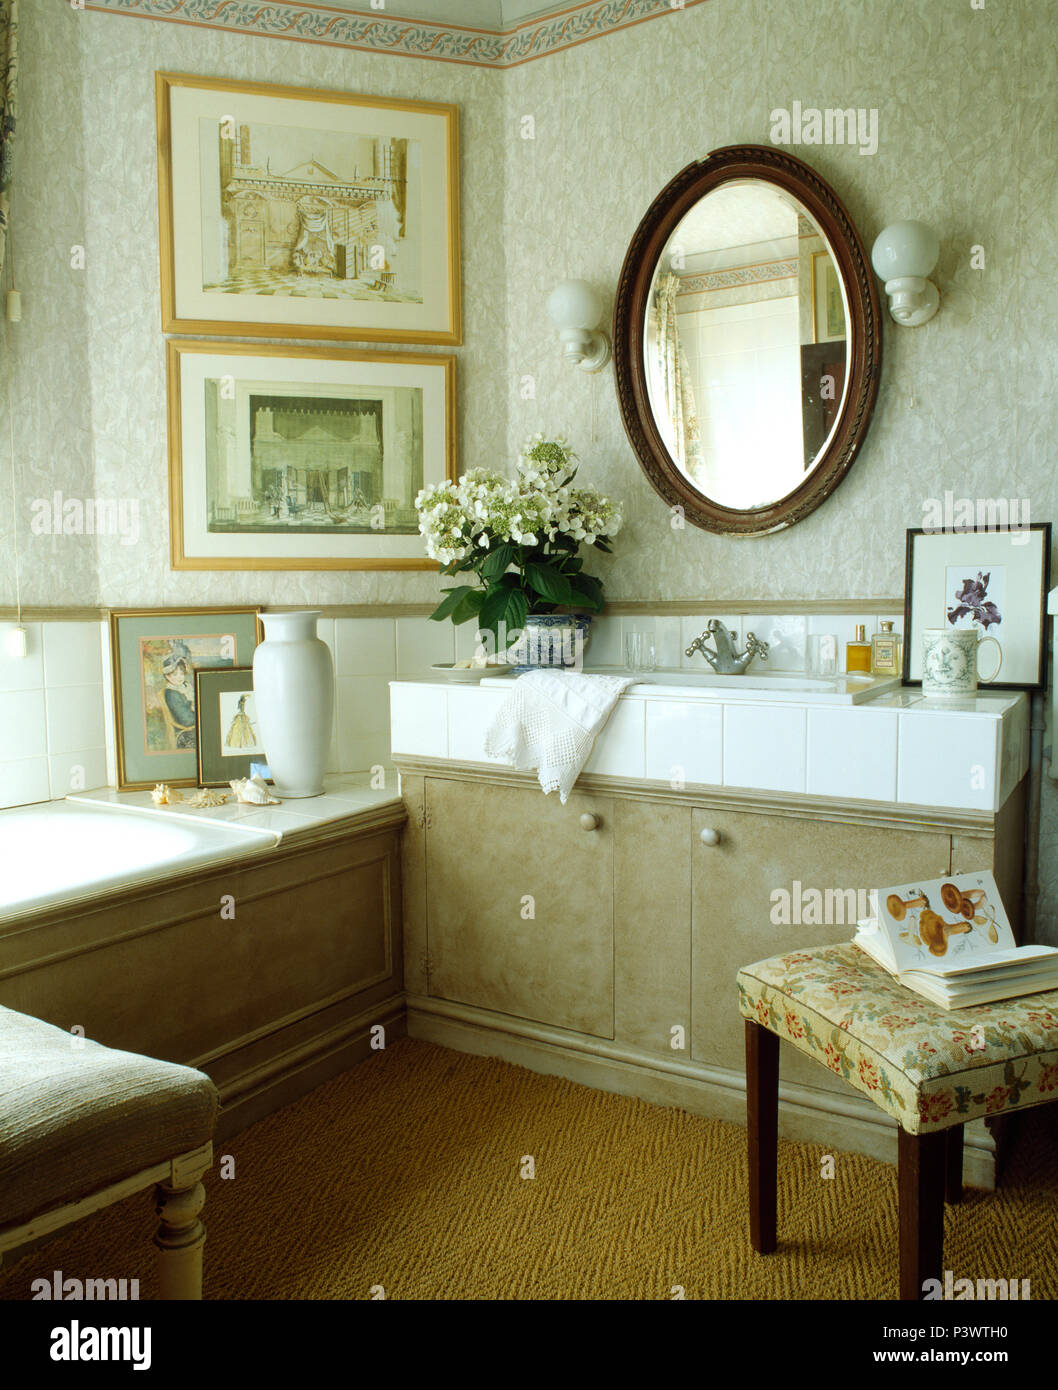 Oval Mirror On Wall Above Basin In Fitted Vanity Unit In Bathroom With Pale Grey Wallpaper Stock Photo Alamy